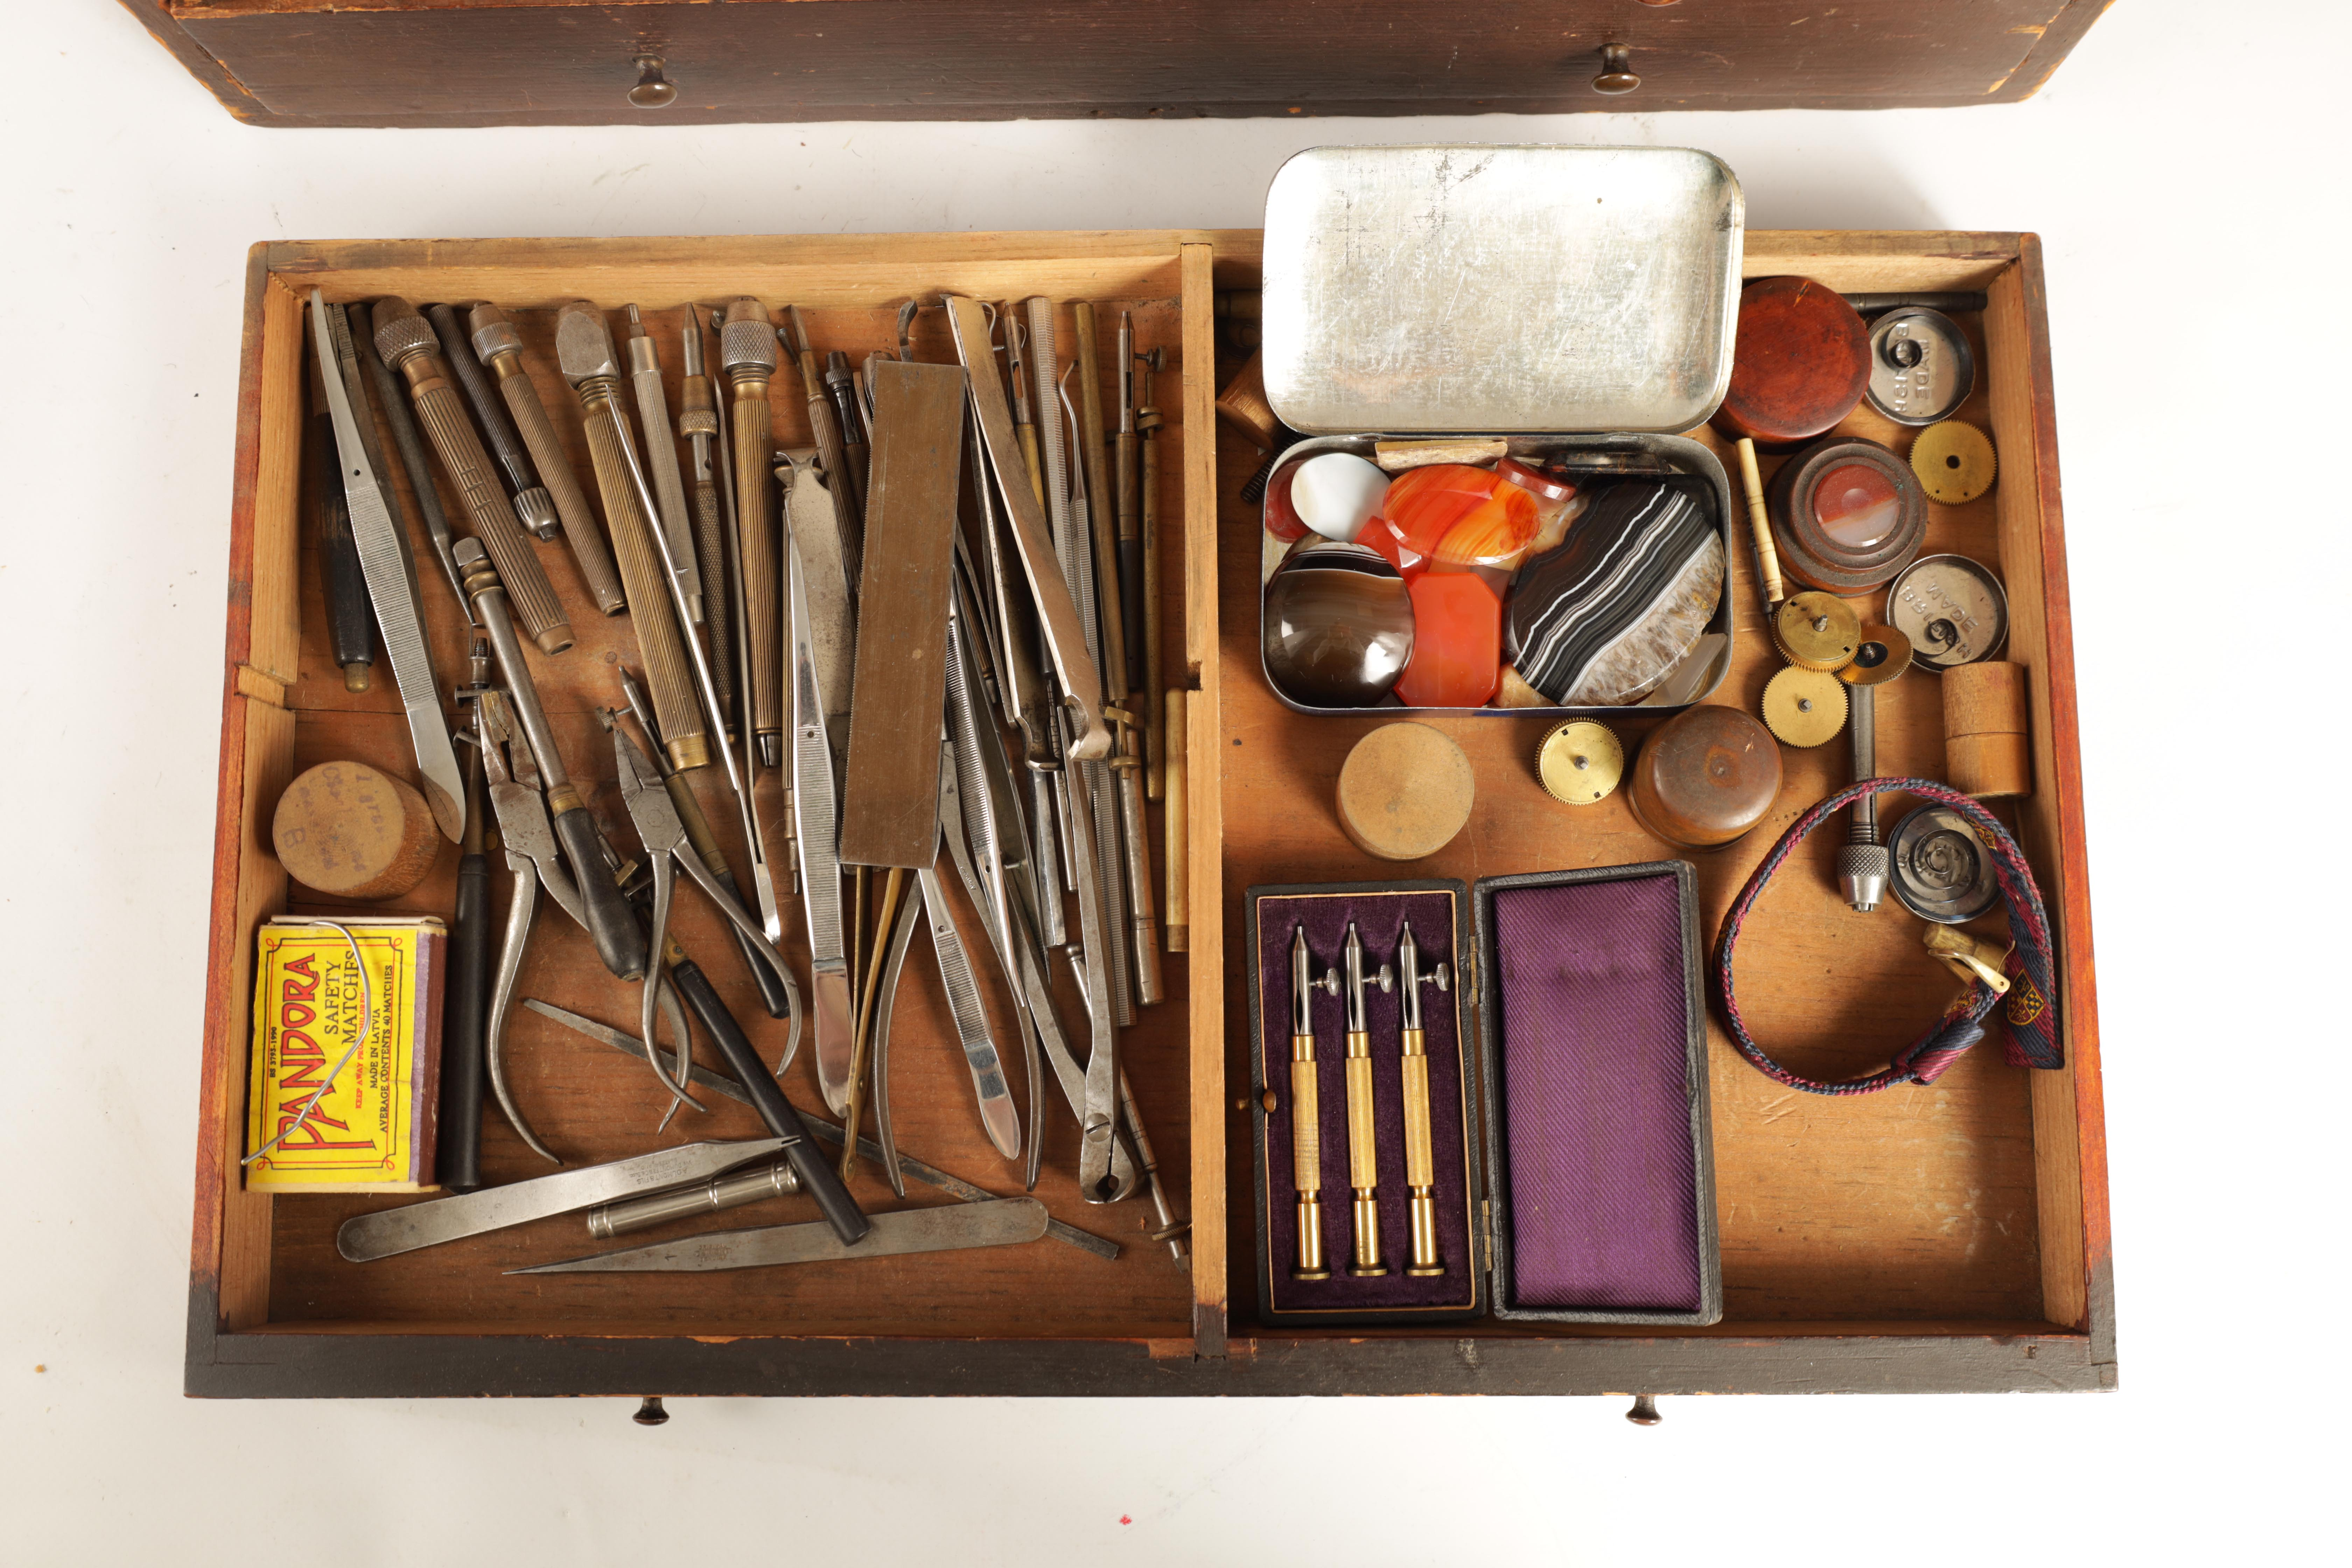 A LARGE COLLECTION OF JEWELERS AND WATCHMAKERS TOOLS contained in a set of pine drawers - Image 7 of 12